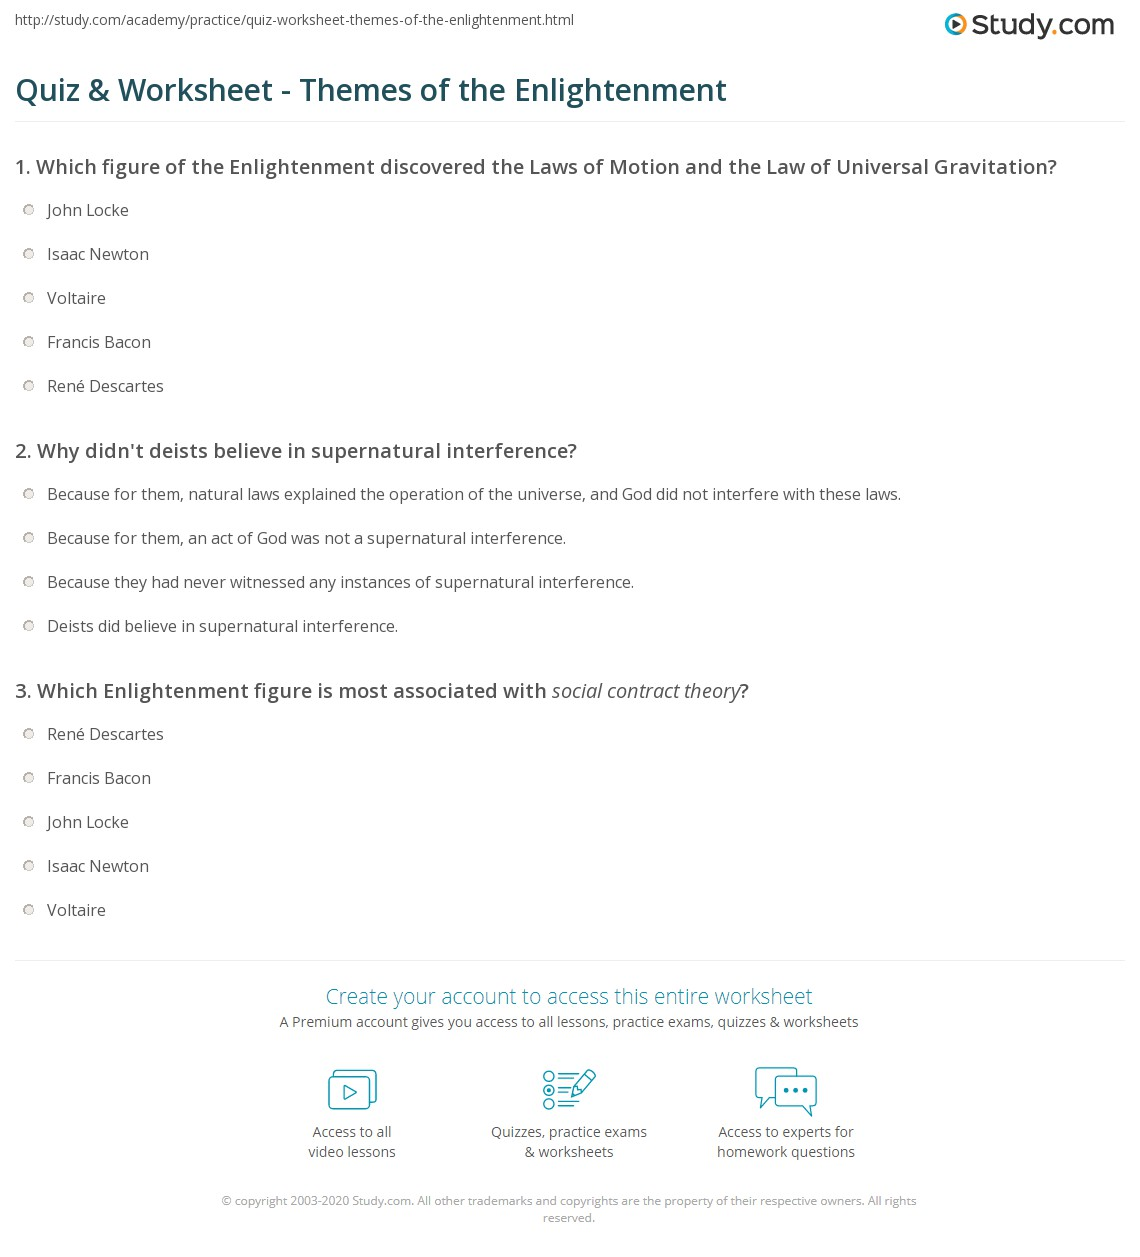 themes of the enlightenment